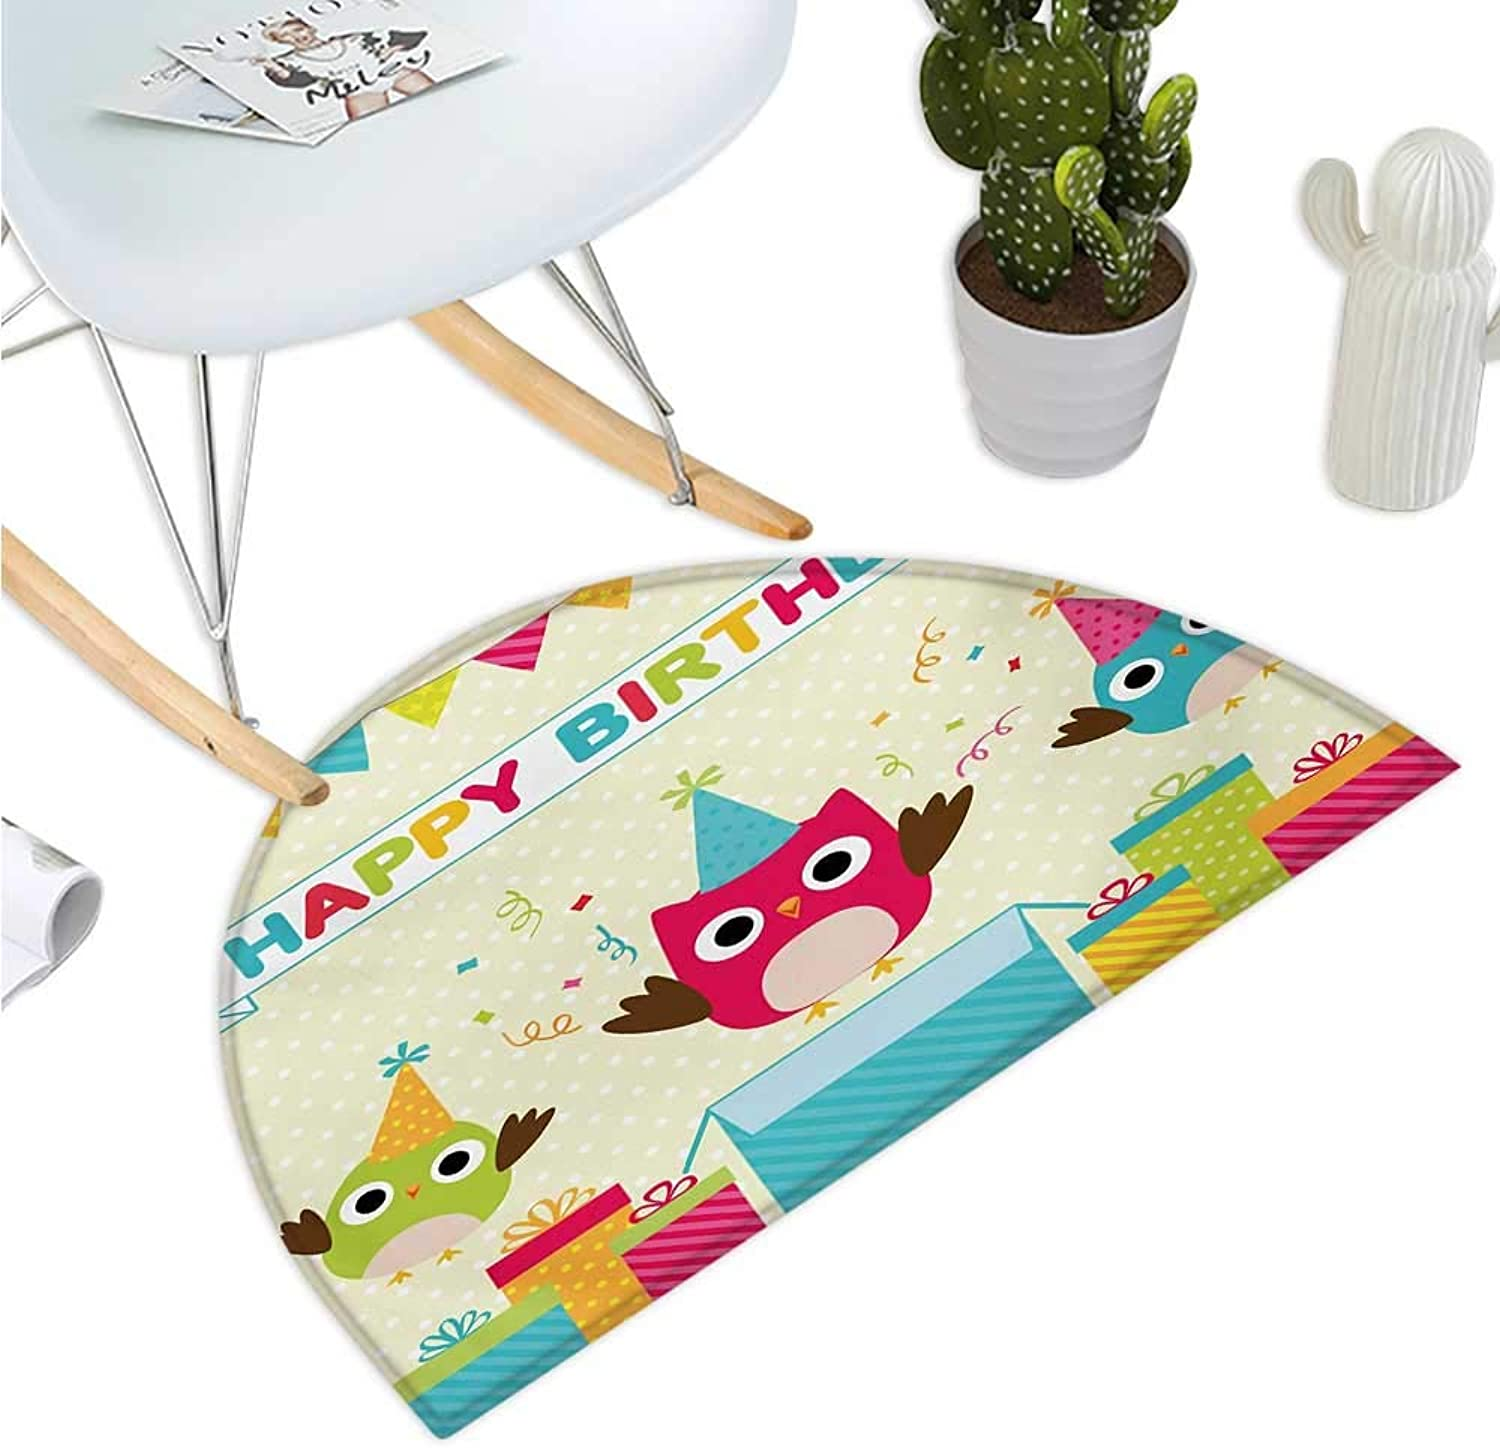 Kids Birthday Half Round Door mats Happy Chubby Baby Owls Flags Box on Polka Dots Backdrop Celebration Print Entry Door Mat H 35.4  xD 53.1  Multicolor